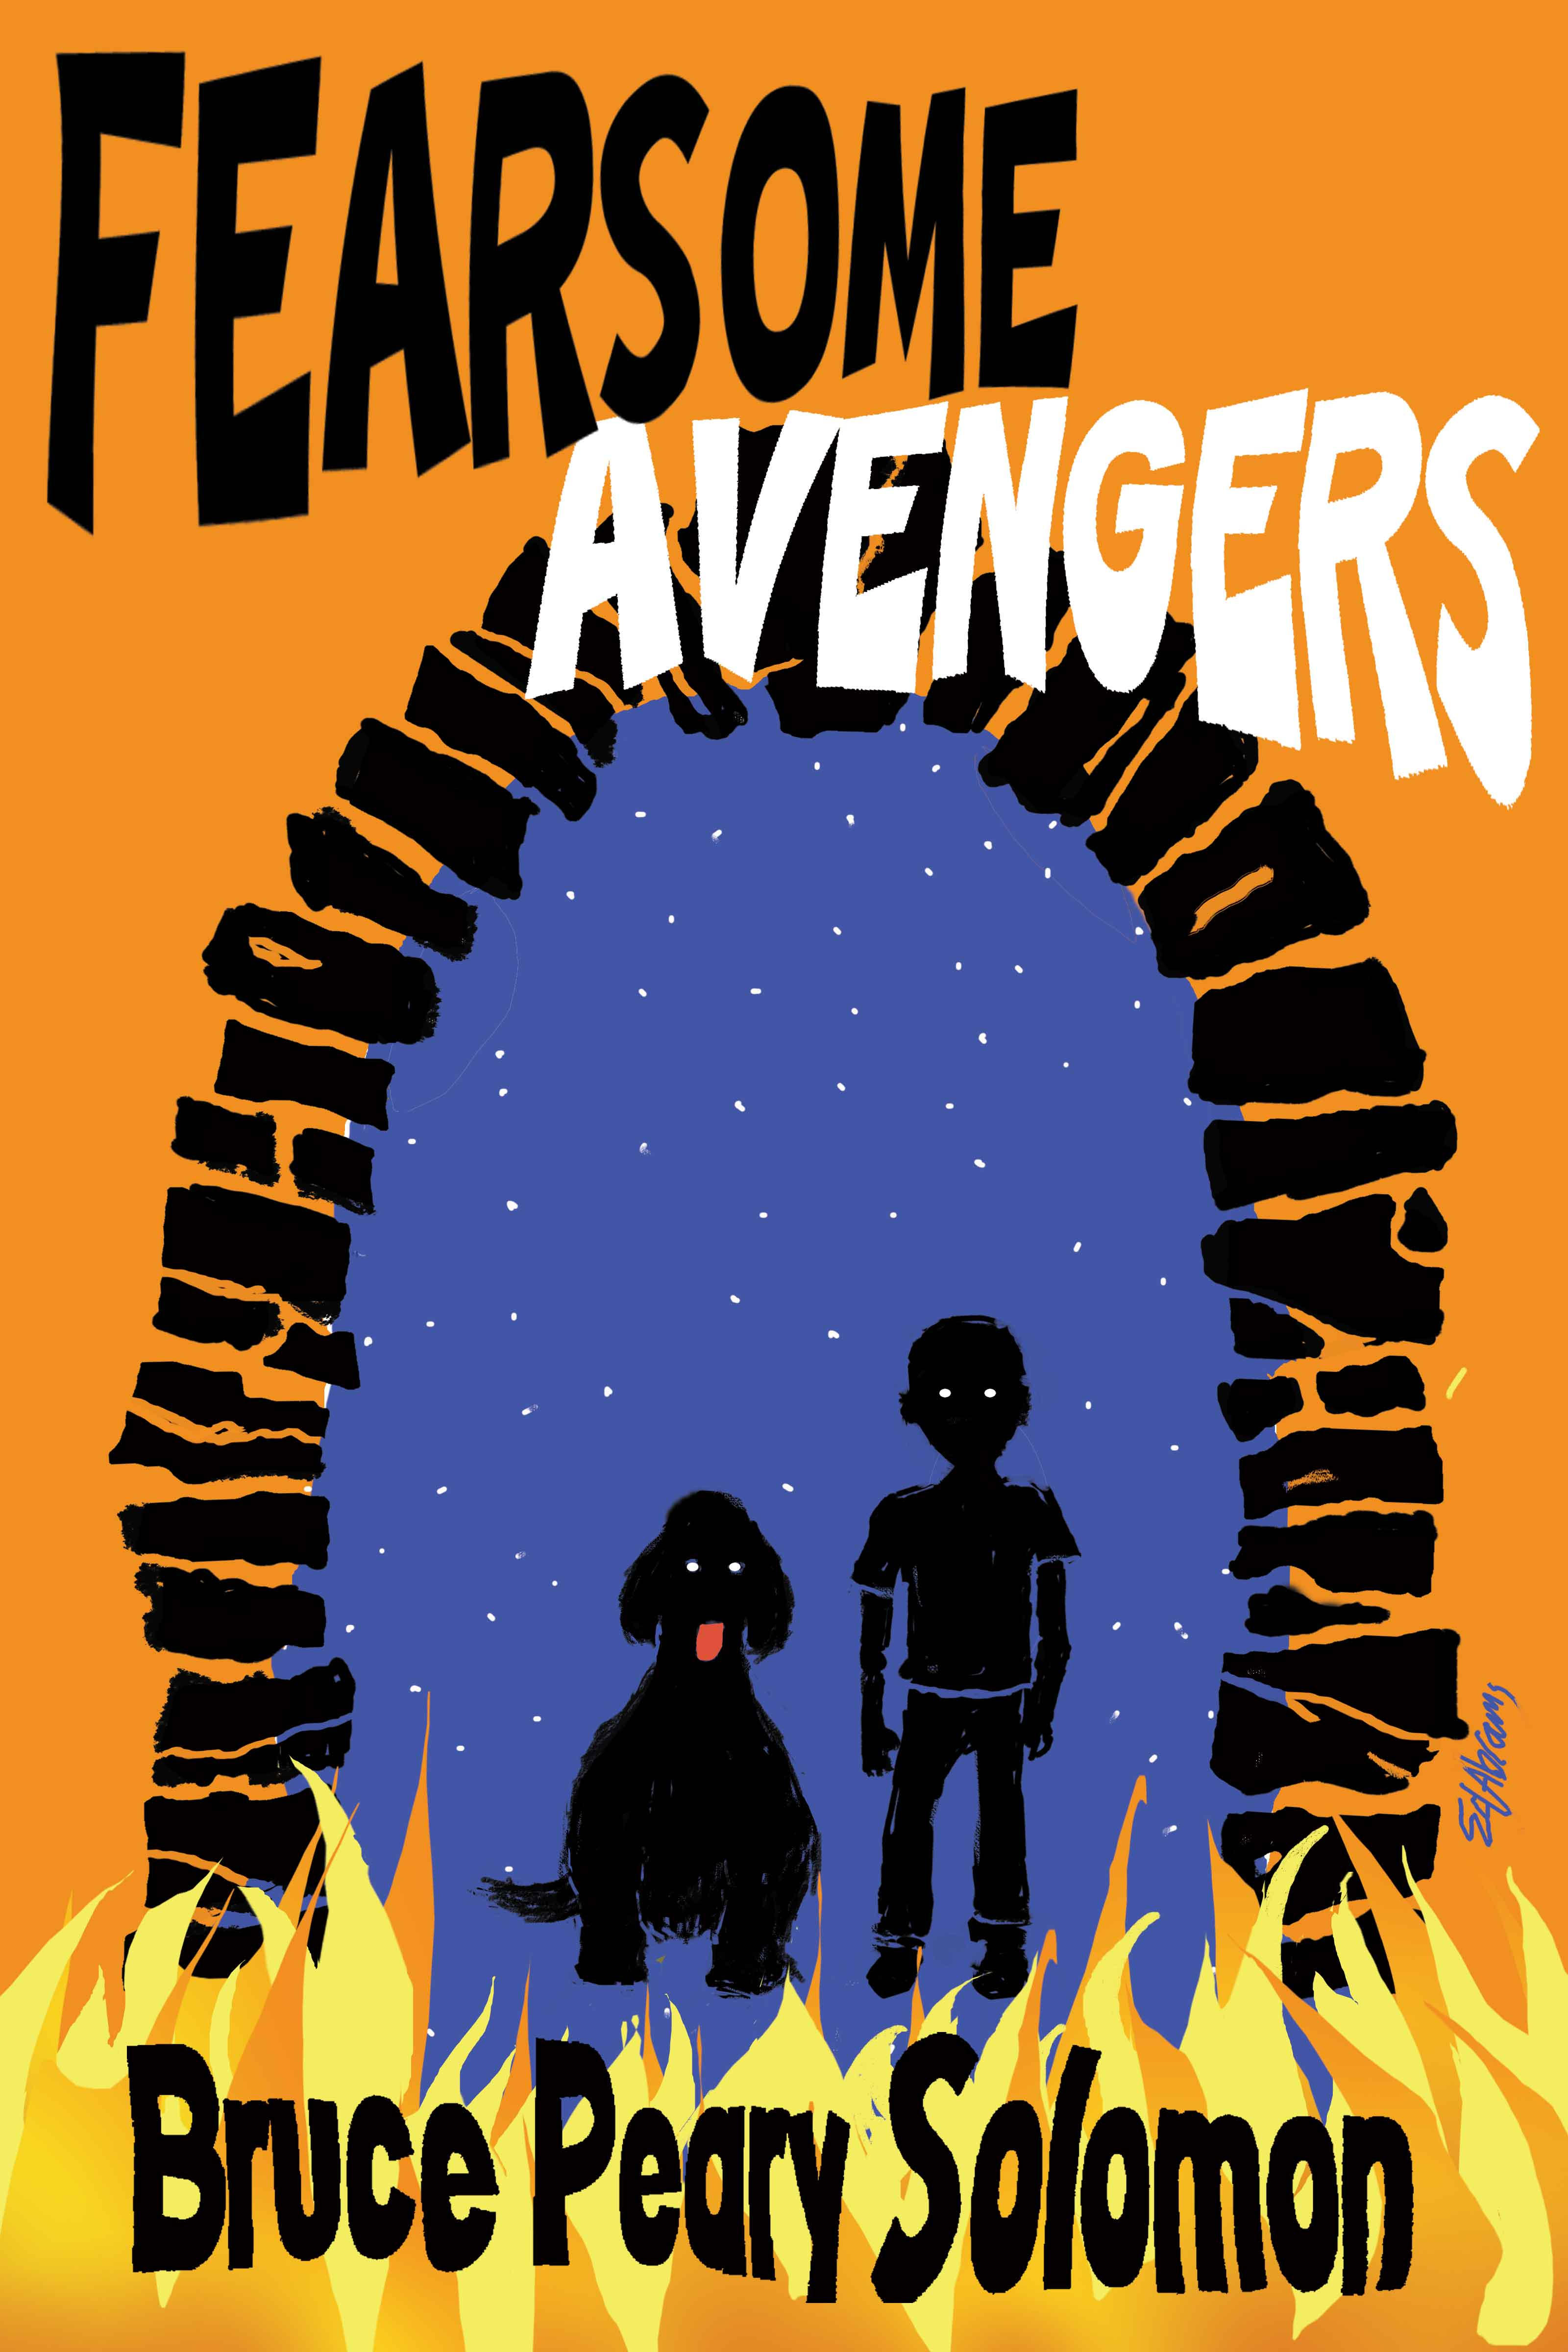 Fearsome-Avengers-final-small